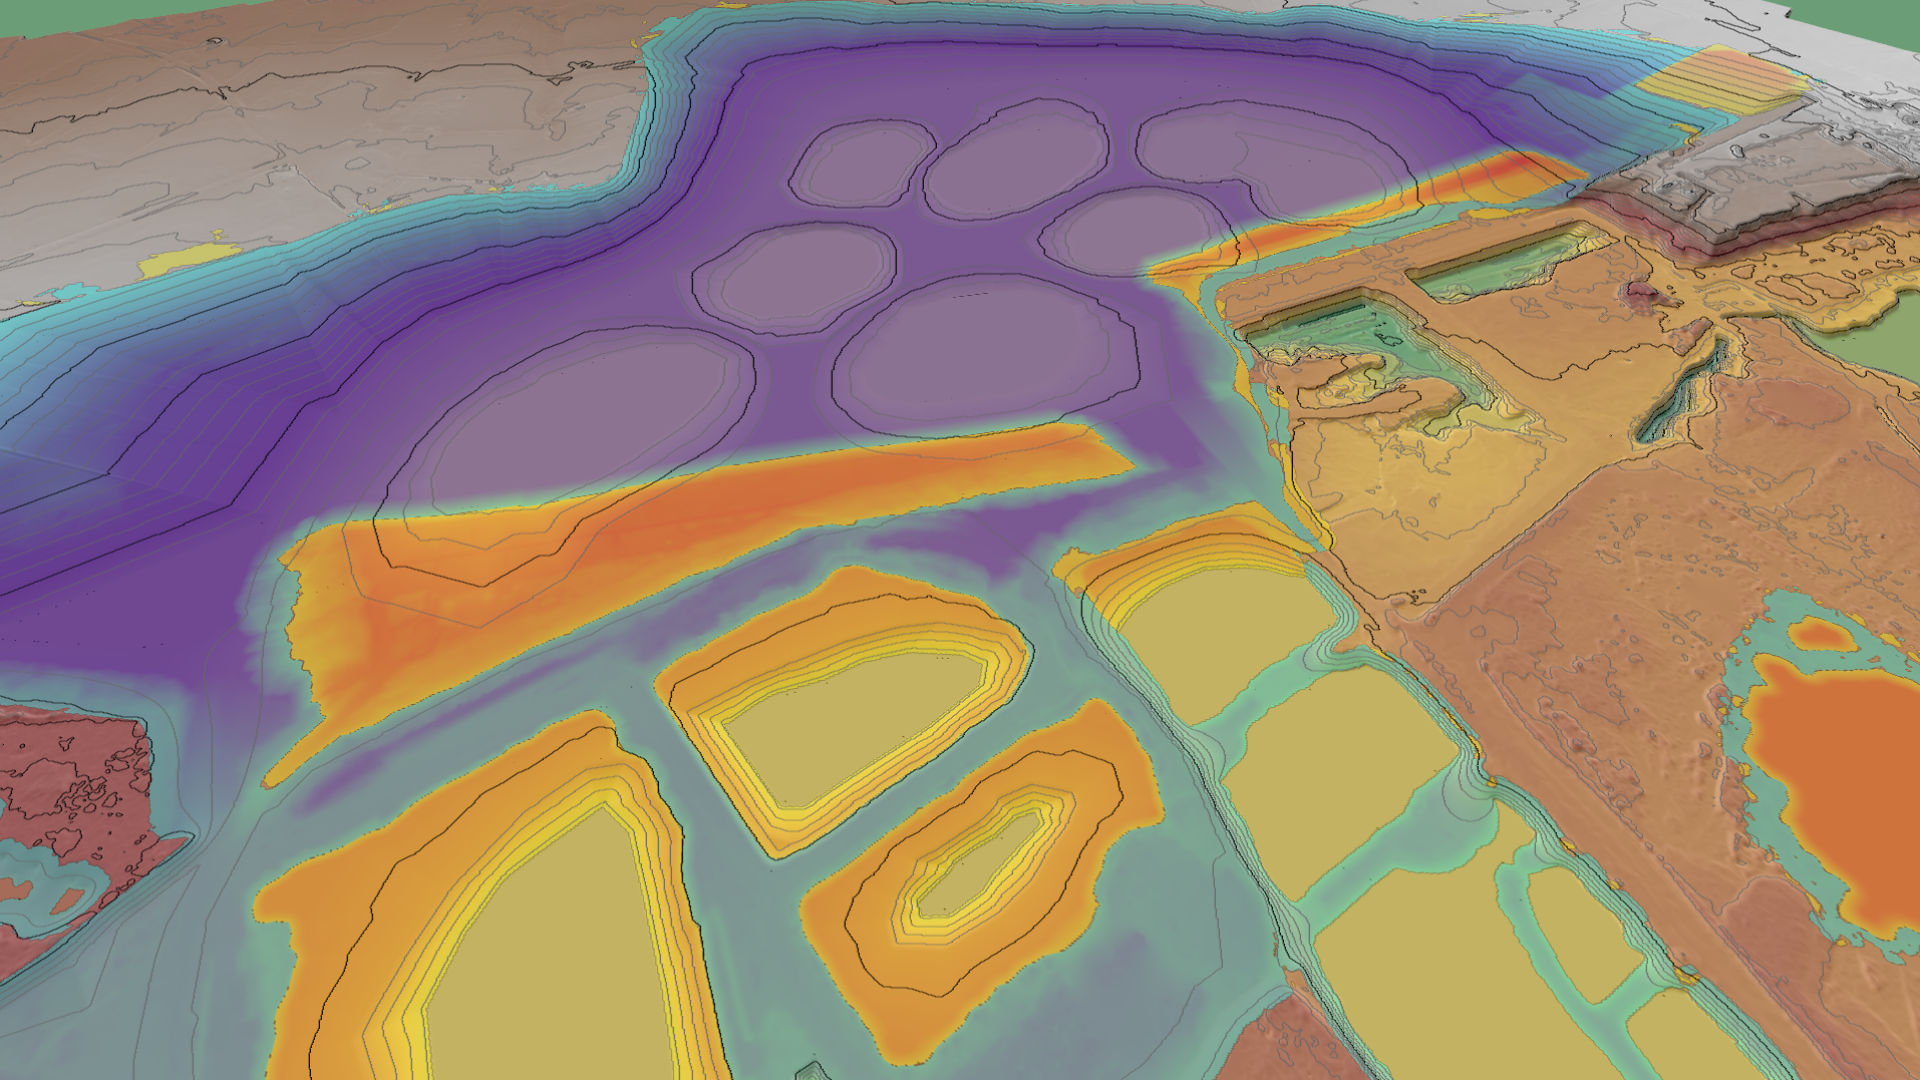 A cut/fill map compare the current quarry topography with a rehabilitation scenario